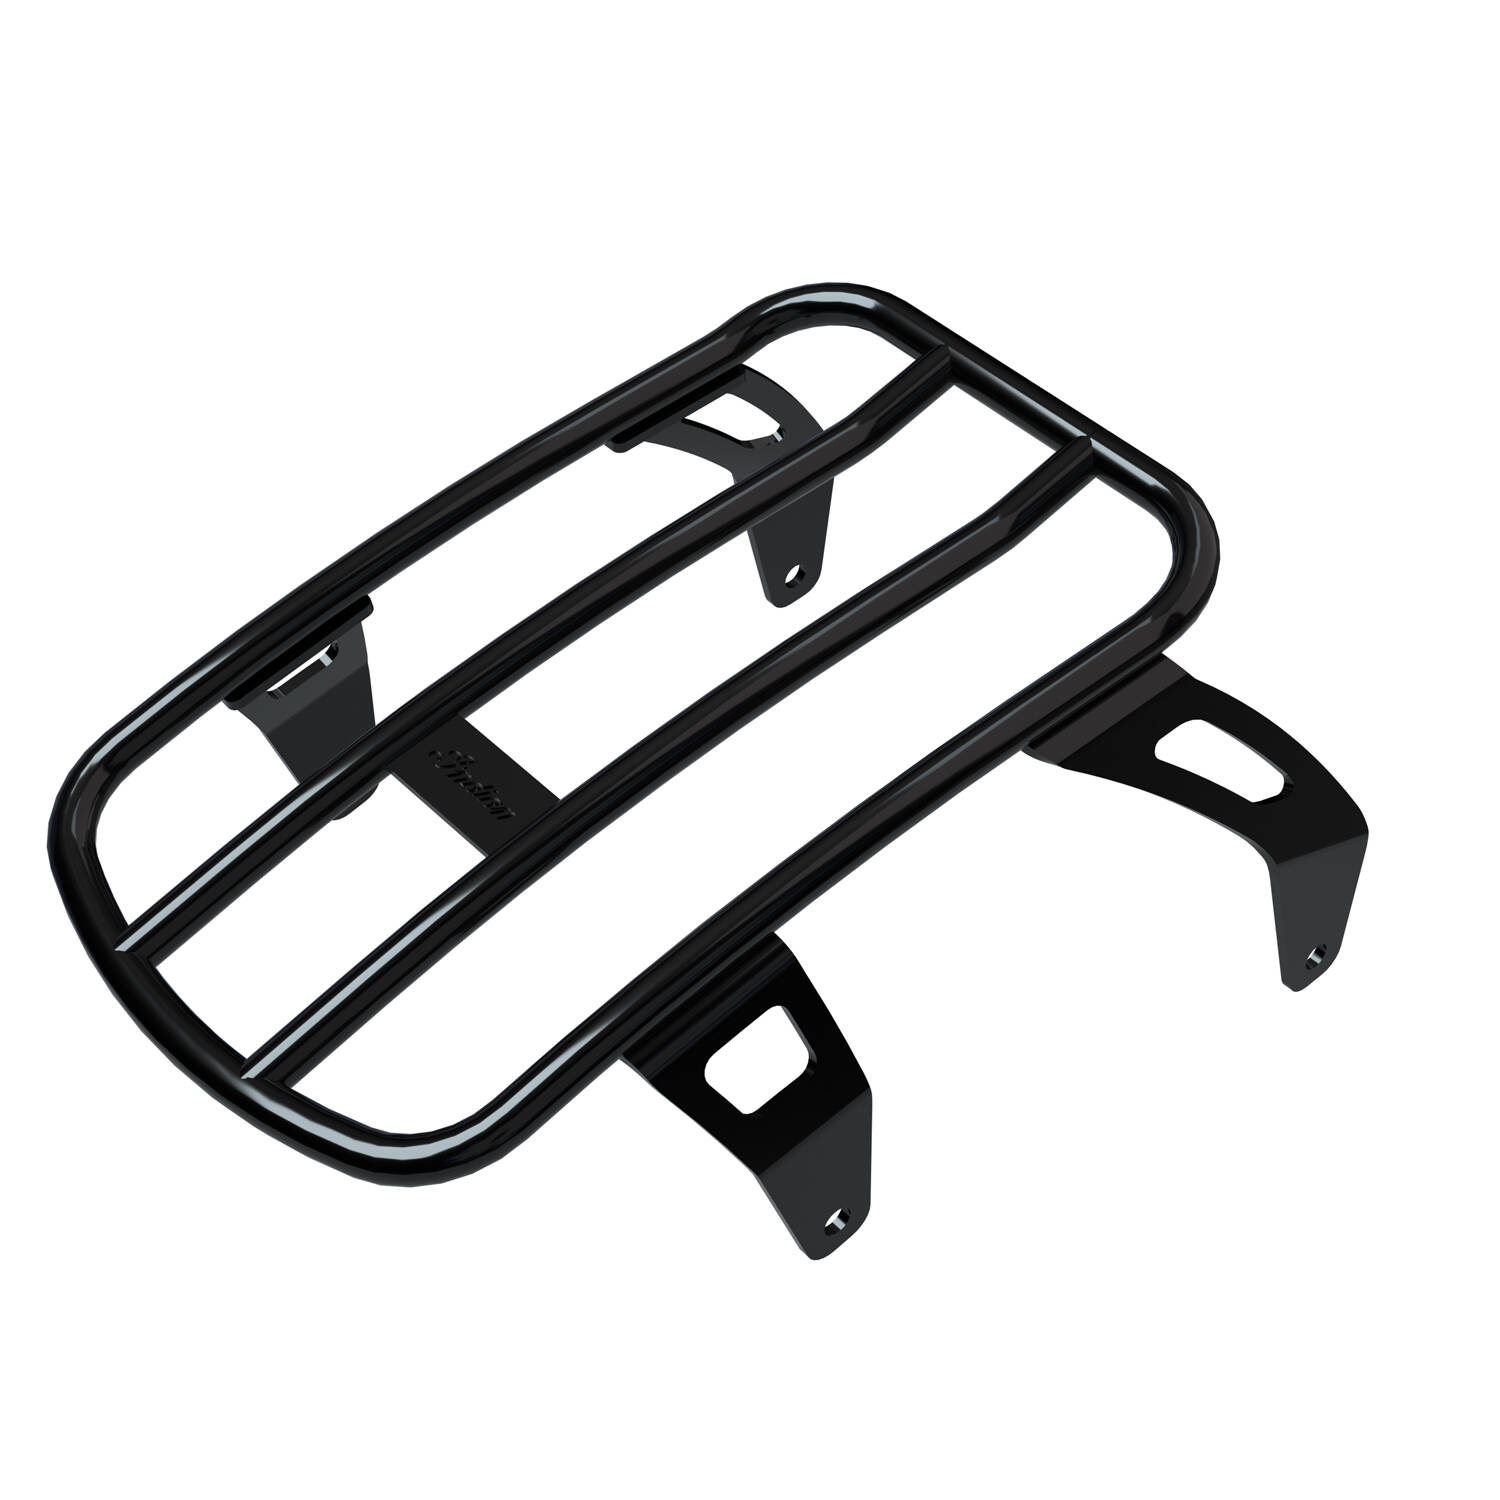 Solo Luggage Rack - Gloss Black